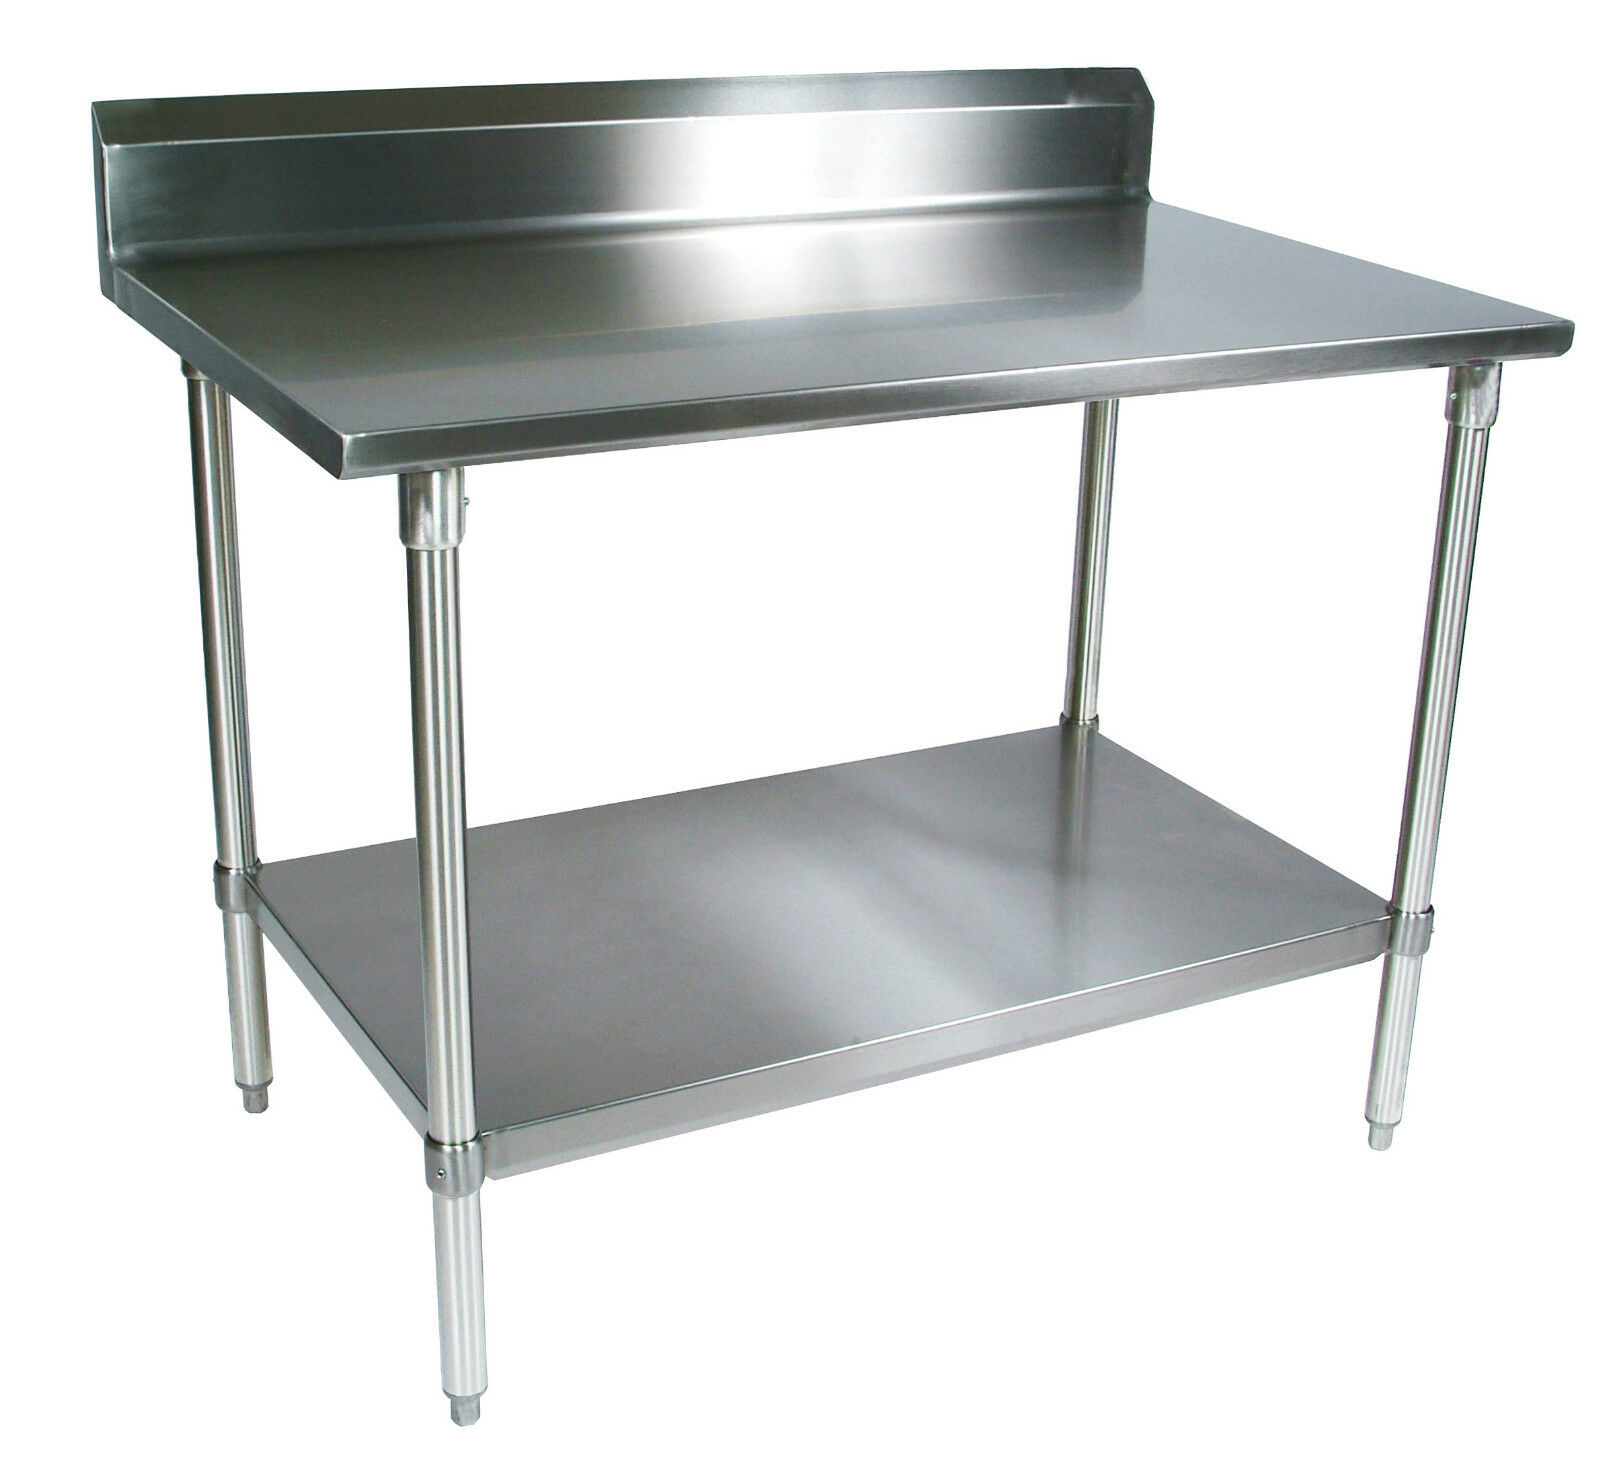 New commercial stainless steel work prep table 24 x 60 with 5 backsplash - Industrial kitchen table stainless steel ...